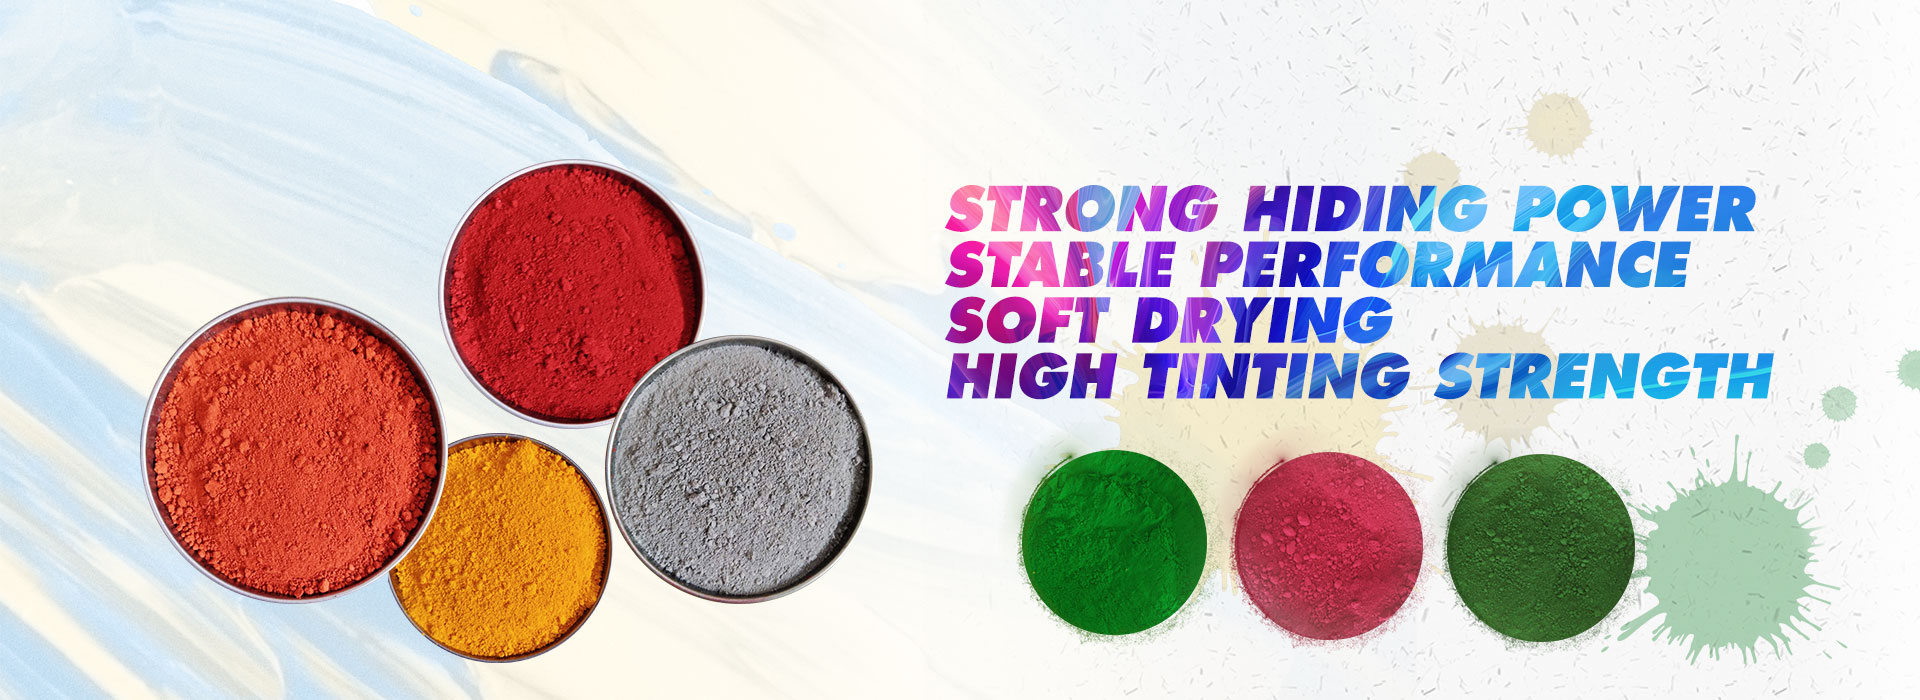 Strong hiding power Stable performance Soft drying High tinting strength